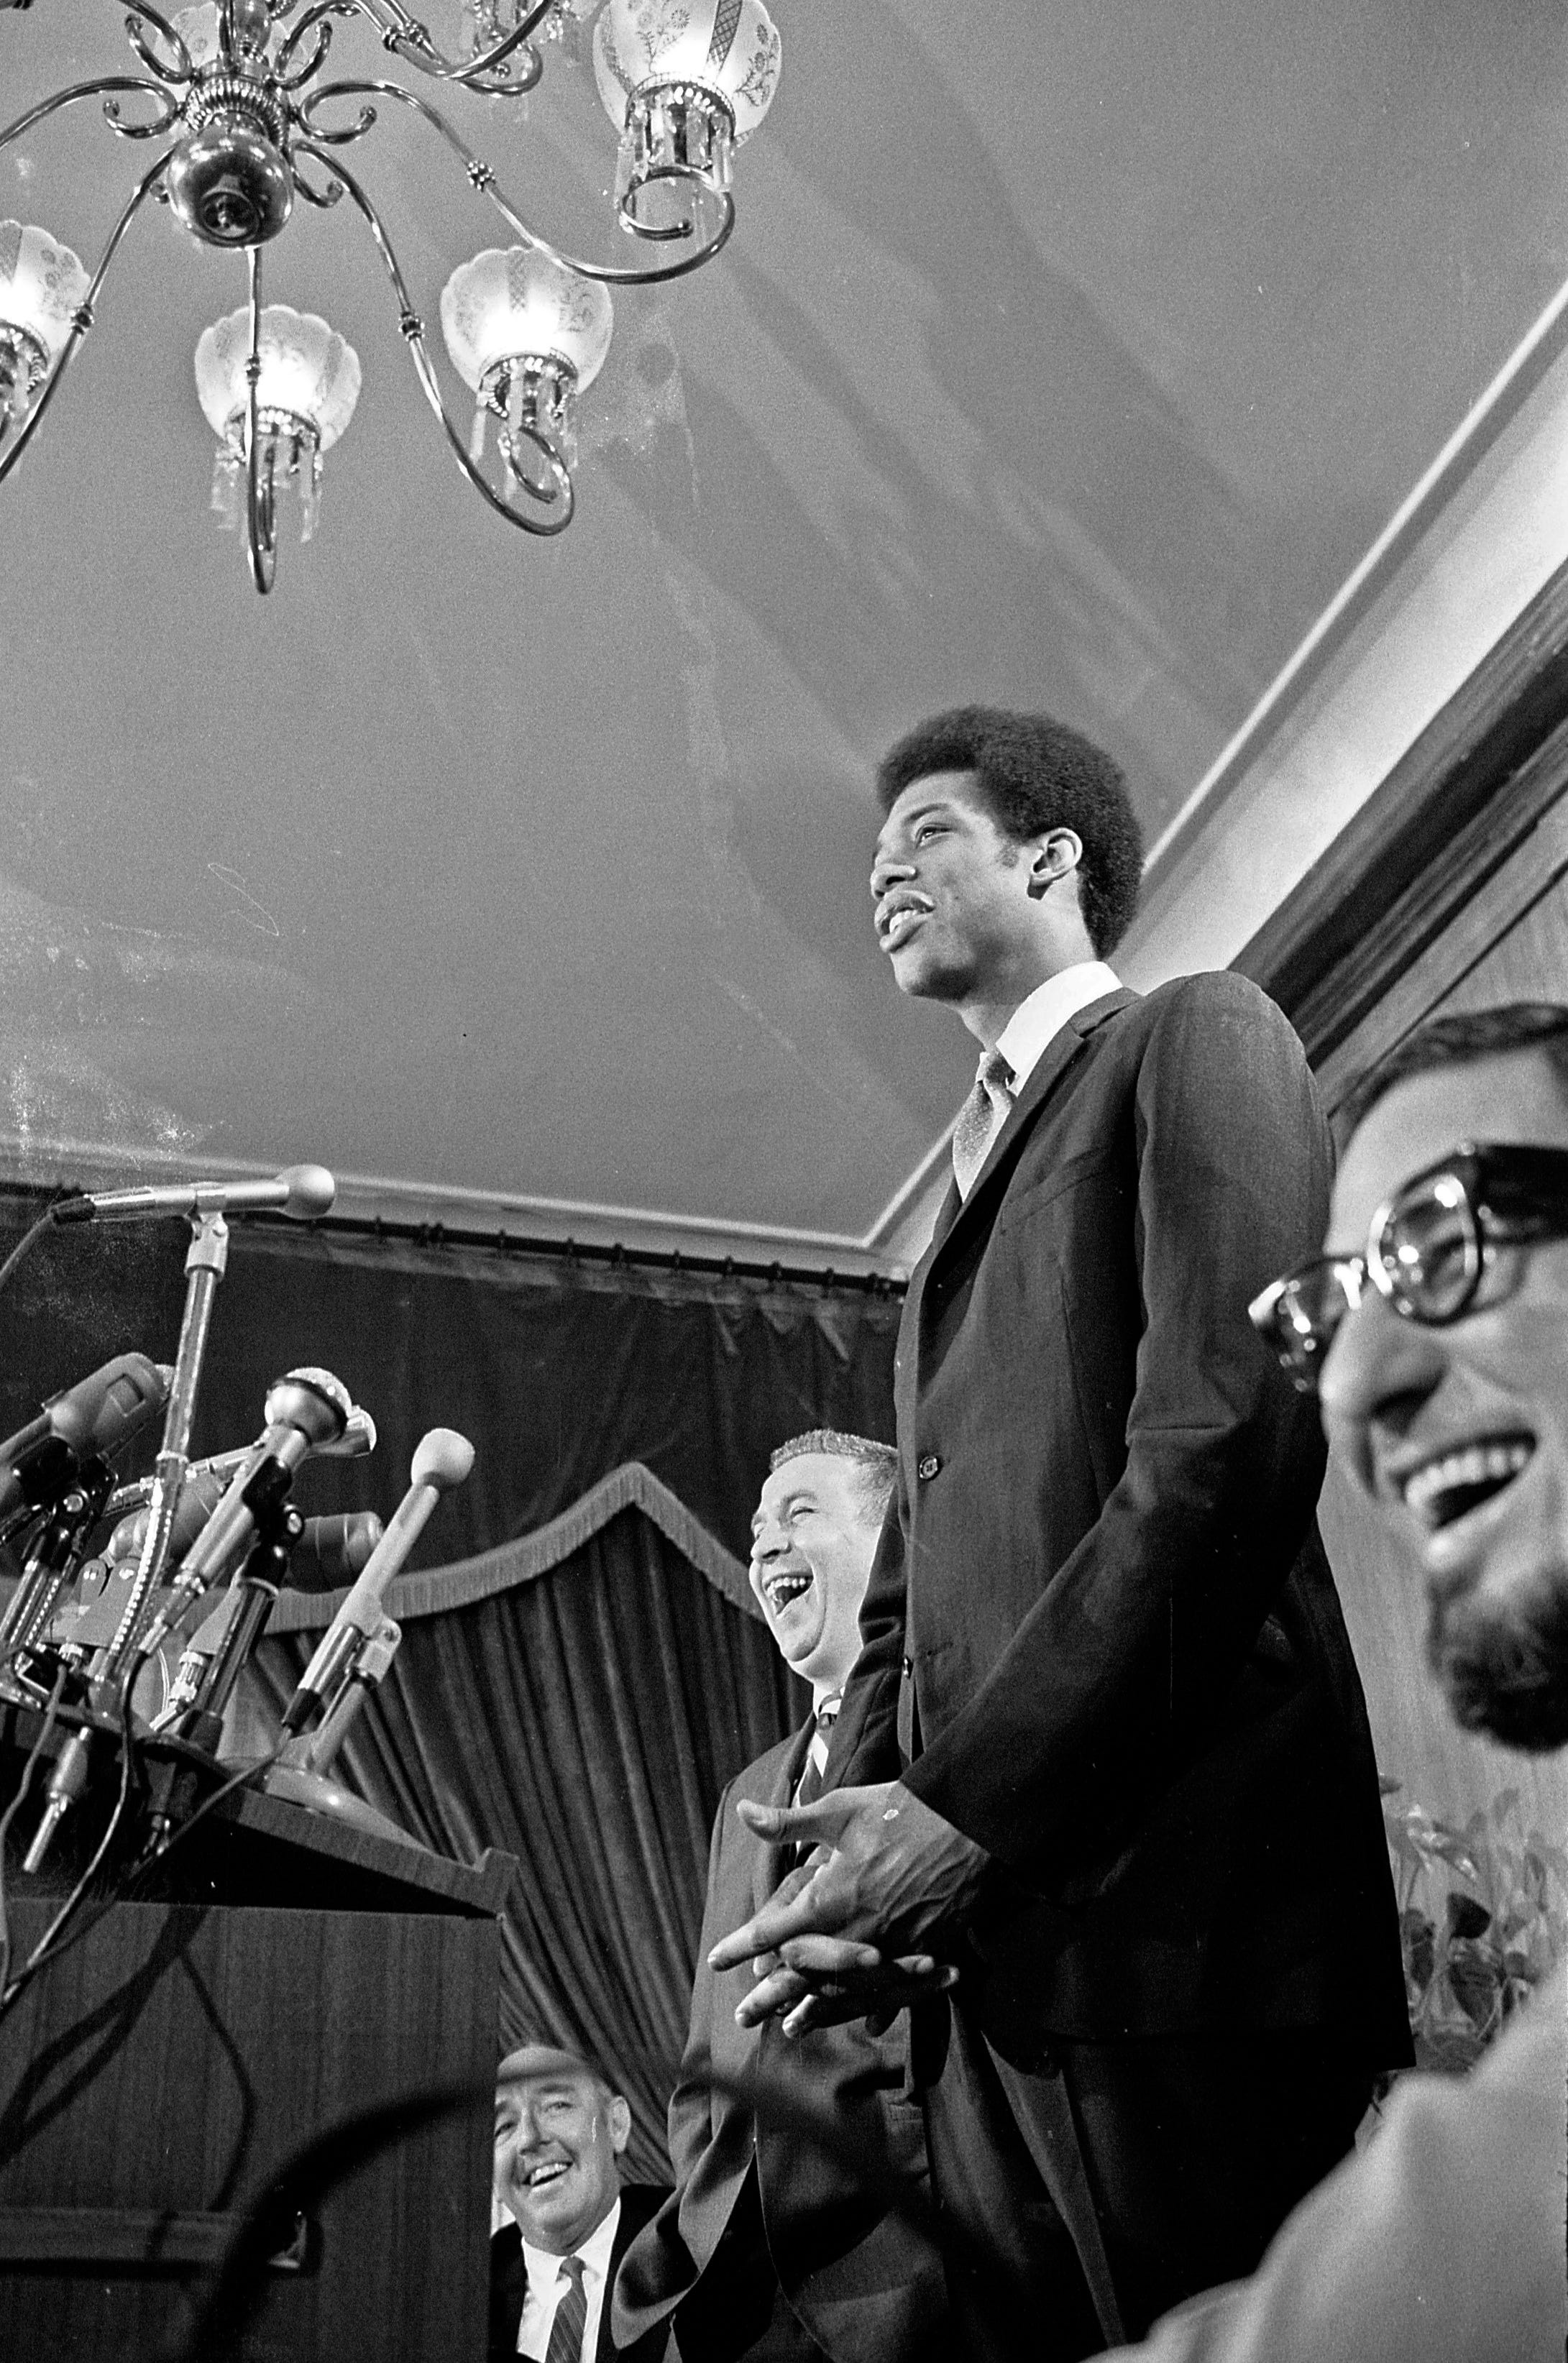 Lew Alcindor (who later changed his name to Kareem Abdul-Jabbar) waits to be introduced by the Milwaukee Bucks during a news conference at the Pfister Hotel in April 1969.